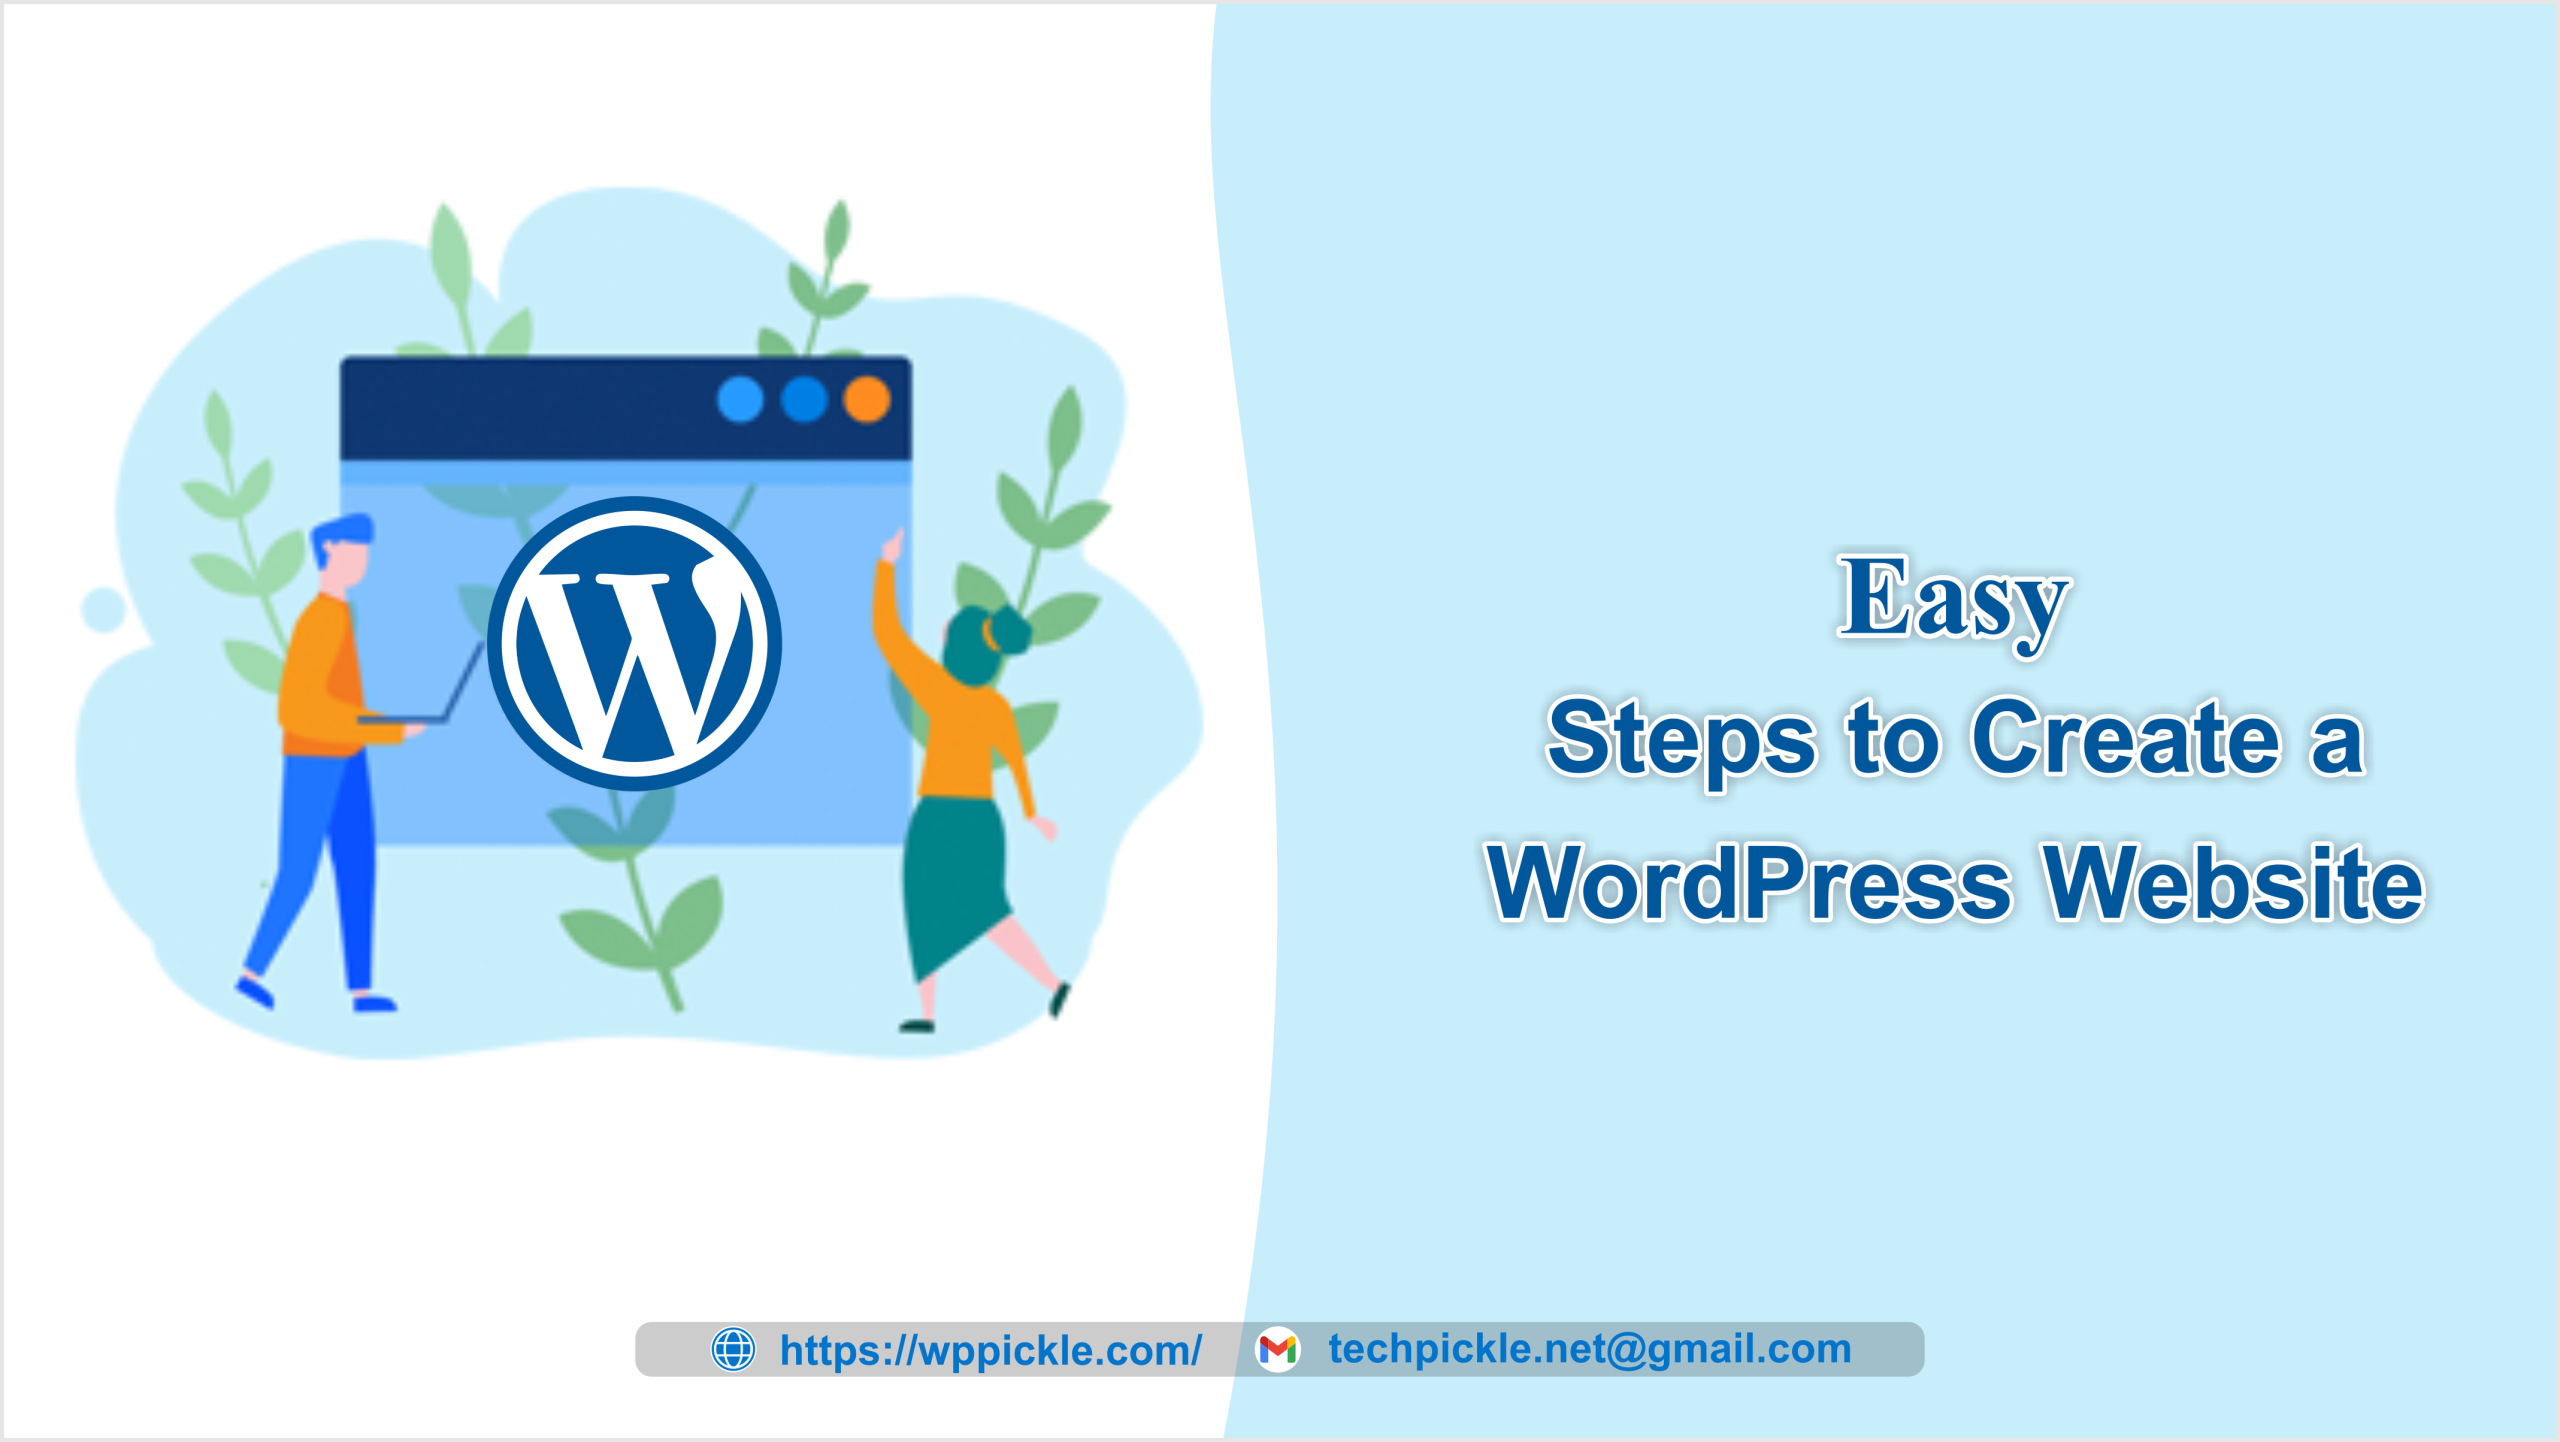 Ultimate Guide: How to Create a WordPress Website – Step-by-Step Guide for Beginners (Free)